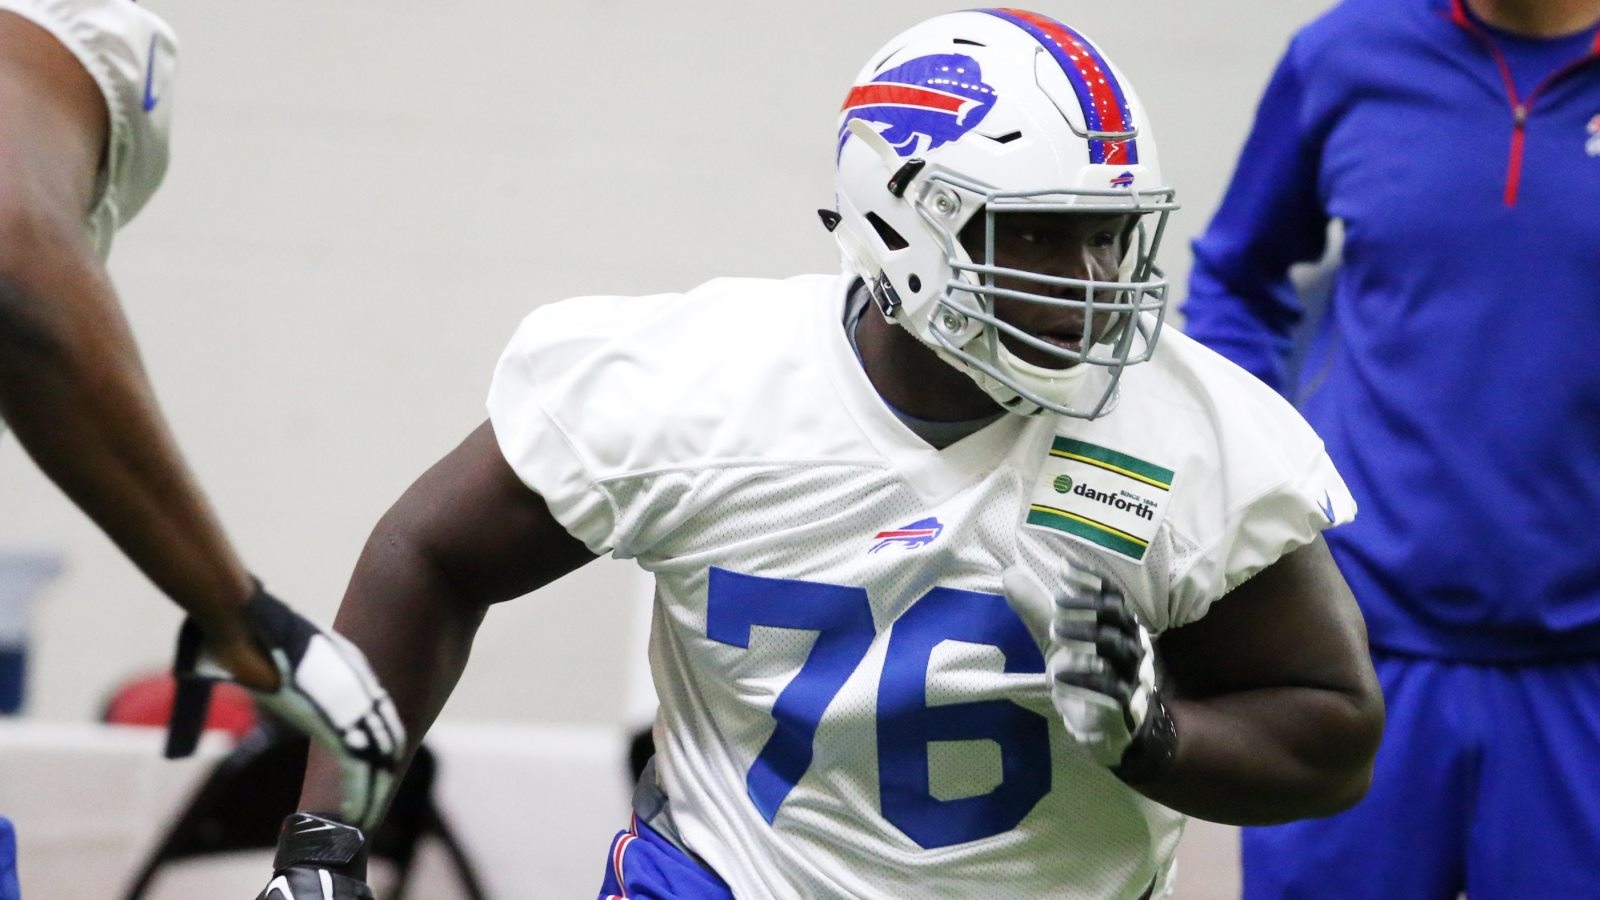 Bills rookie John Miller will be given every chance to win a starting spot at offensive guard during training camp. (James P. McCoy/Buffalo News)